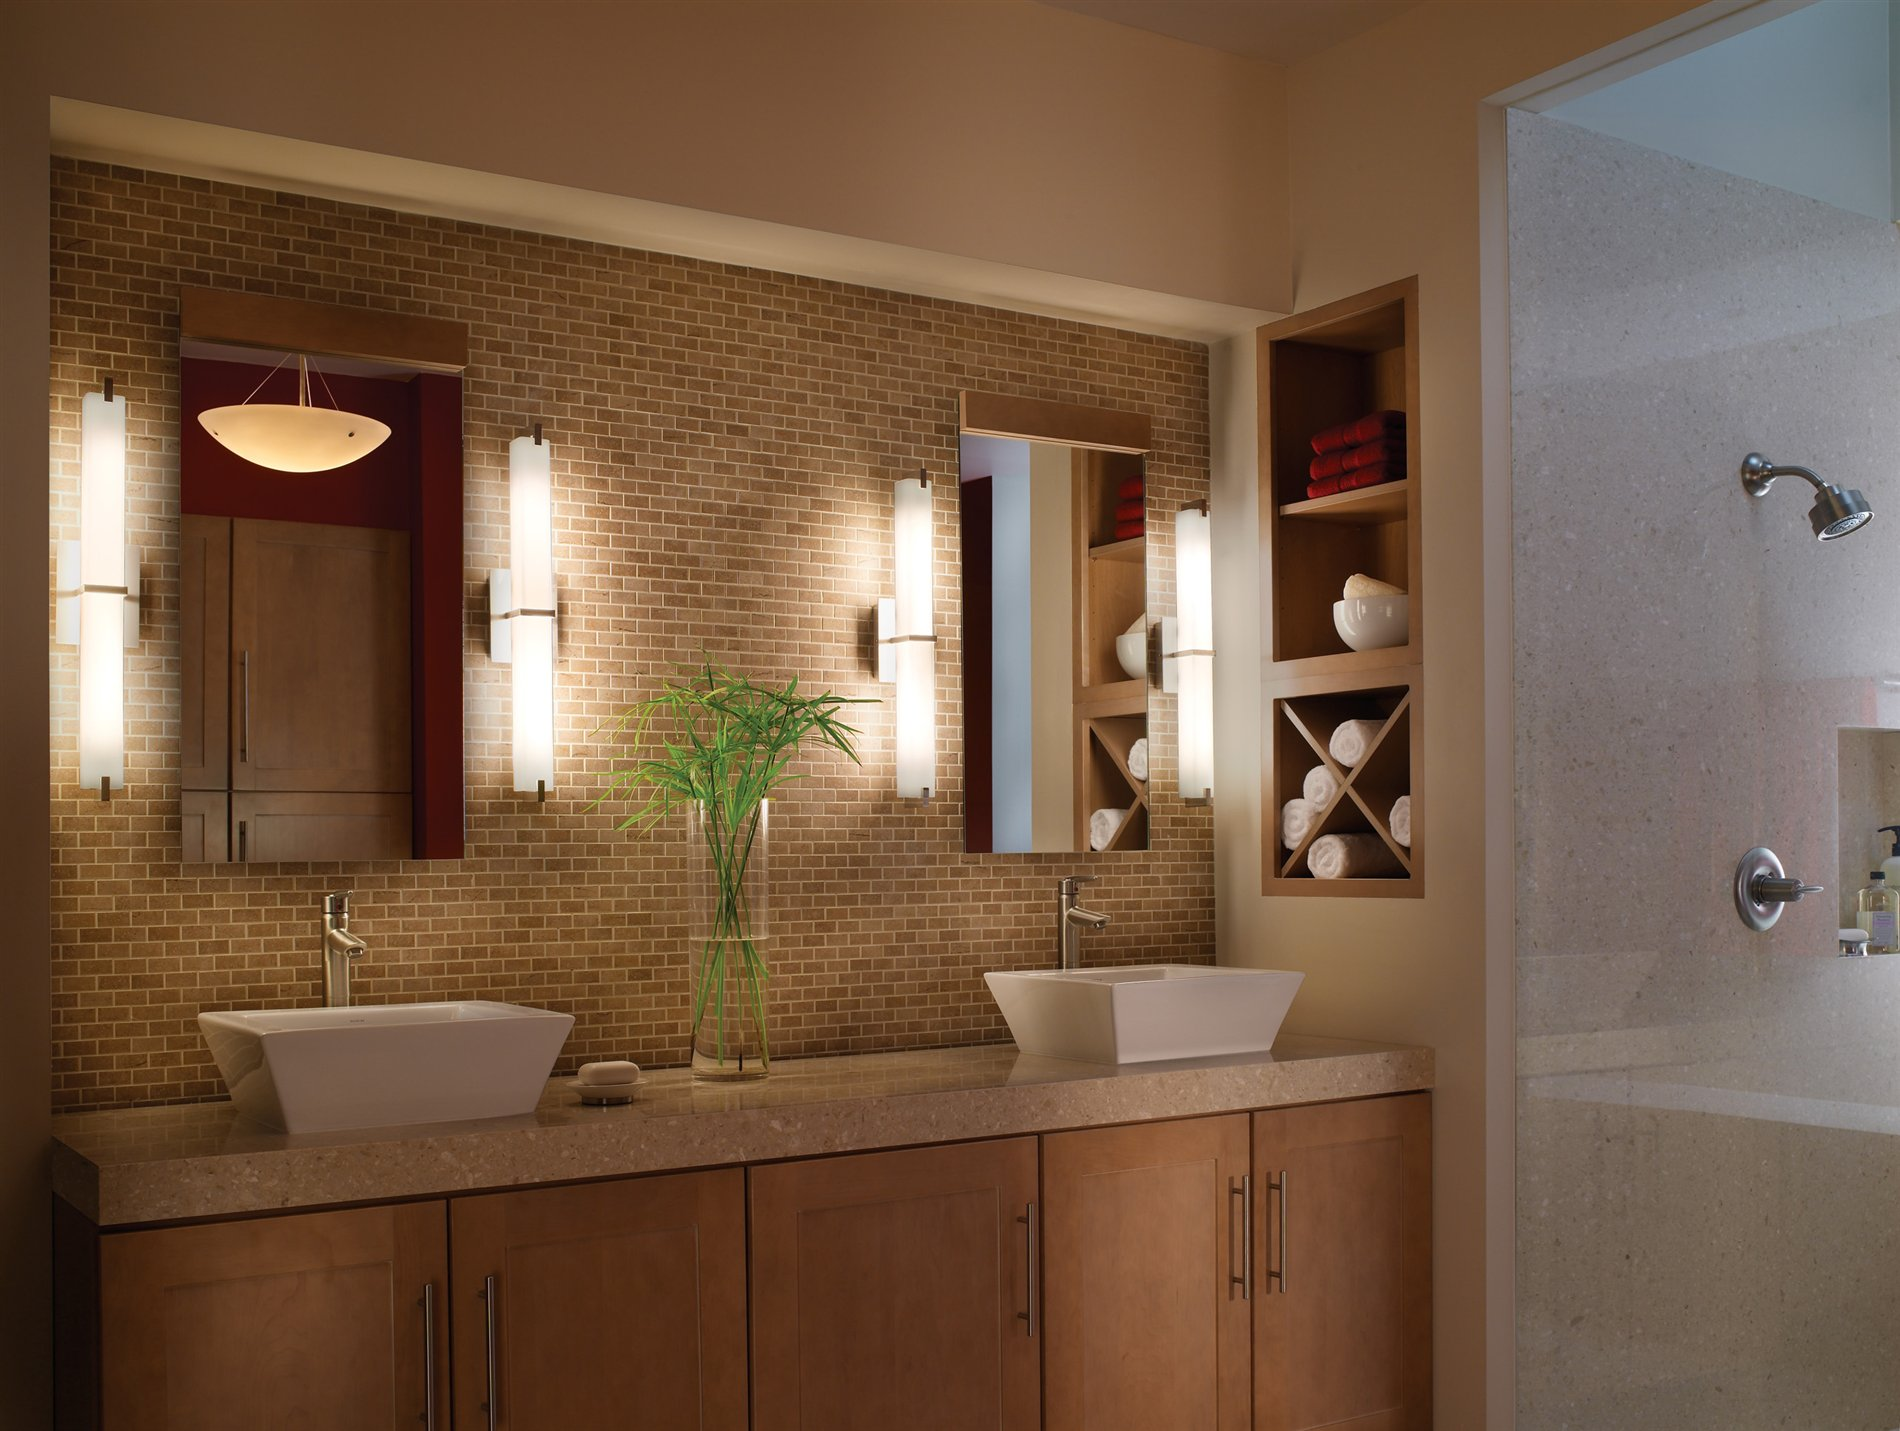 Bathroom Wall Vanity Lights : Tech Lighting 700BCMET Metro Modern / Contemporary Bathroom / Vanity Light 700BCMET